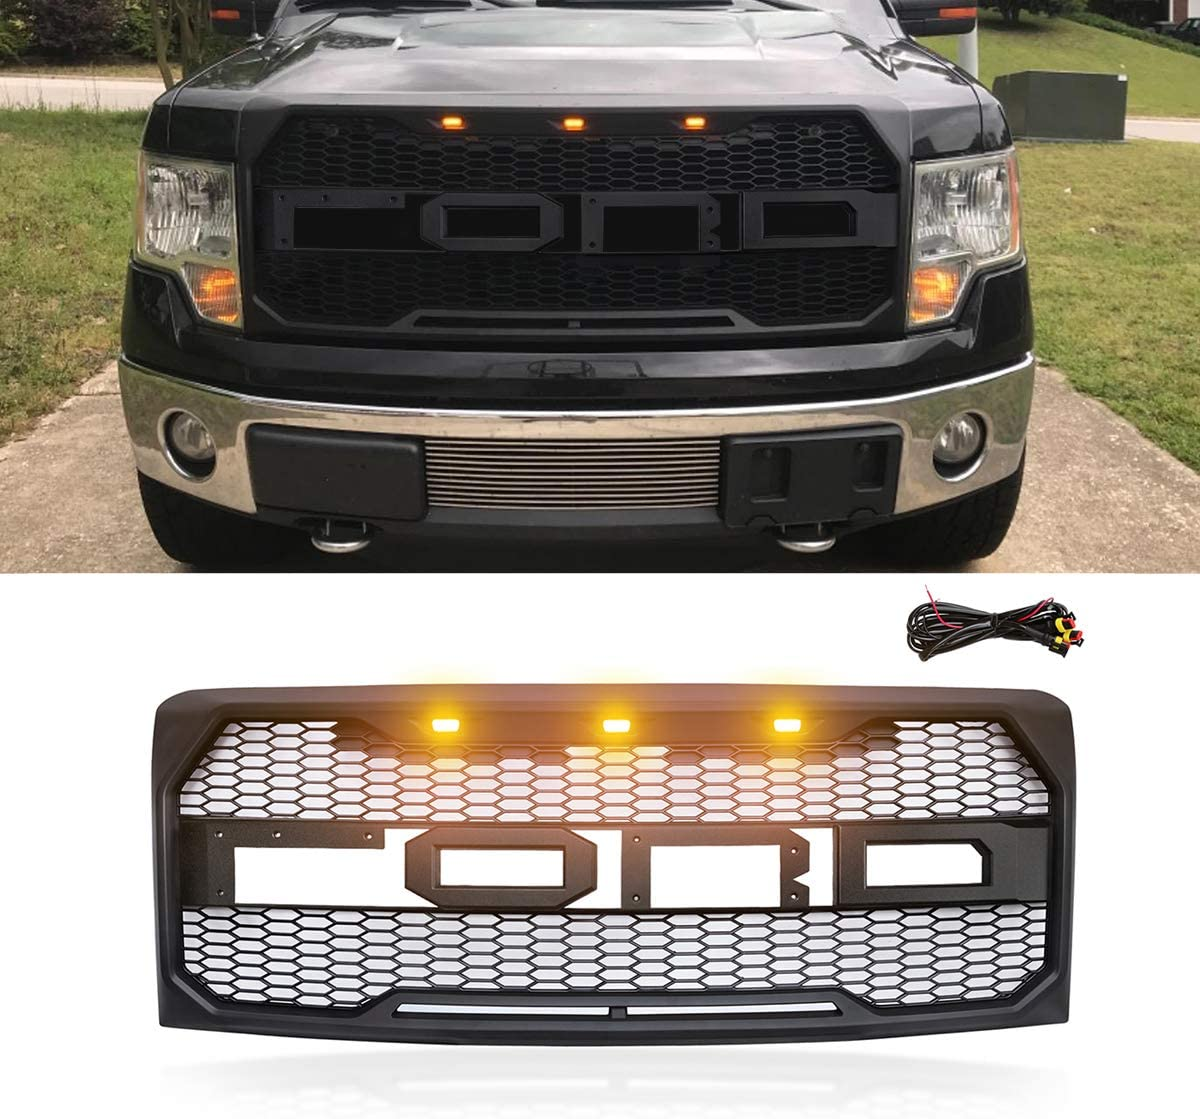 VZ4X4 Raptor Style Grille Mesh Grill Compatible with Ford F150 F-150 2009 2010 2011 2012 2013 2014 Matte Black